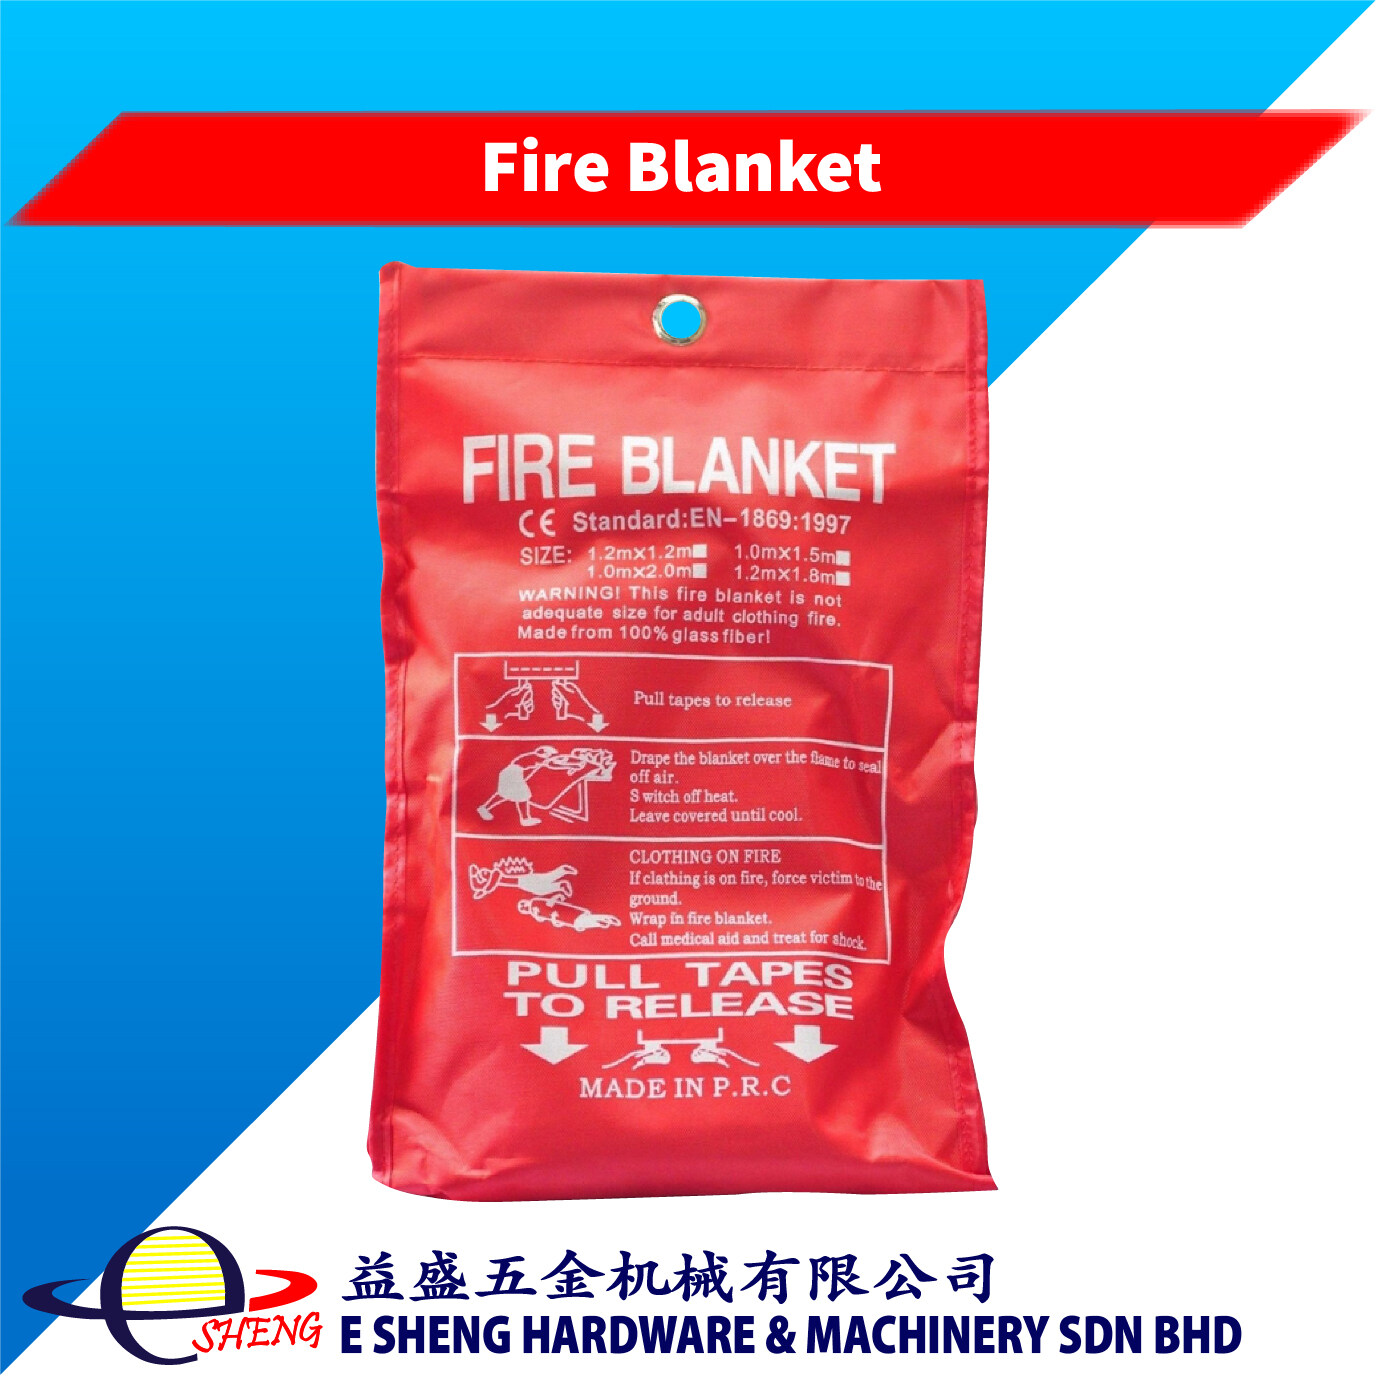 1.2m X 1.2m Home Kitchen Fiberglass Fire Safety Blanket (Emergency Safety Cover Fire Blanket)